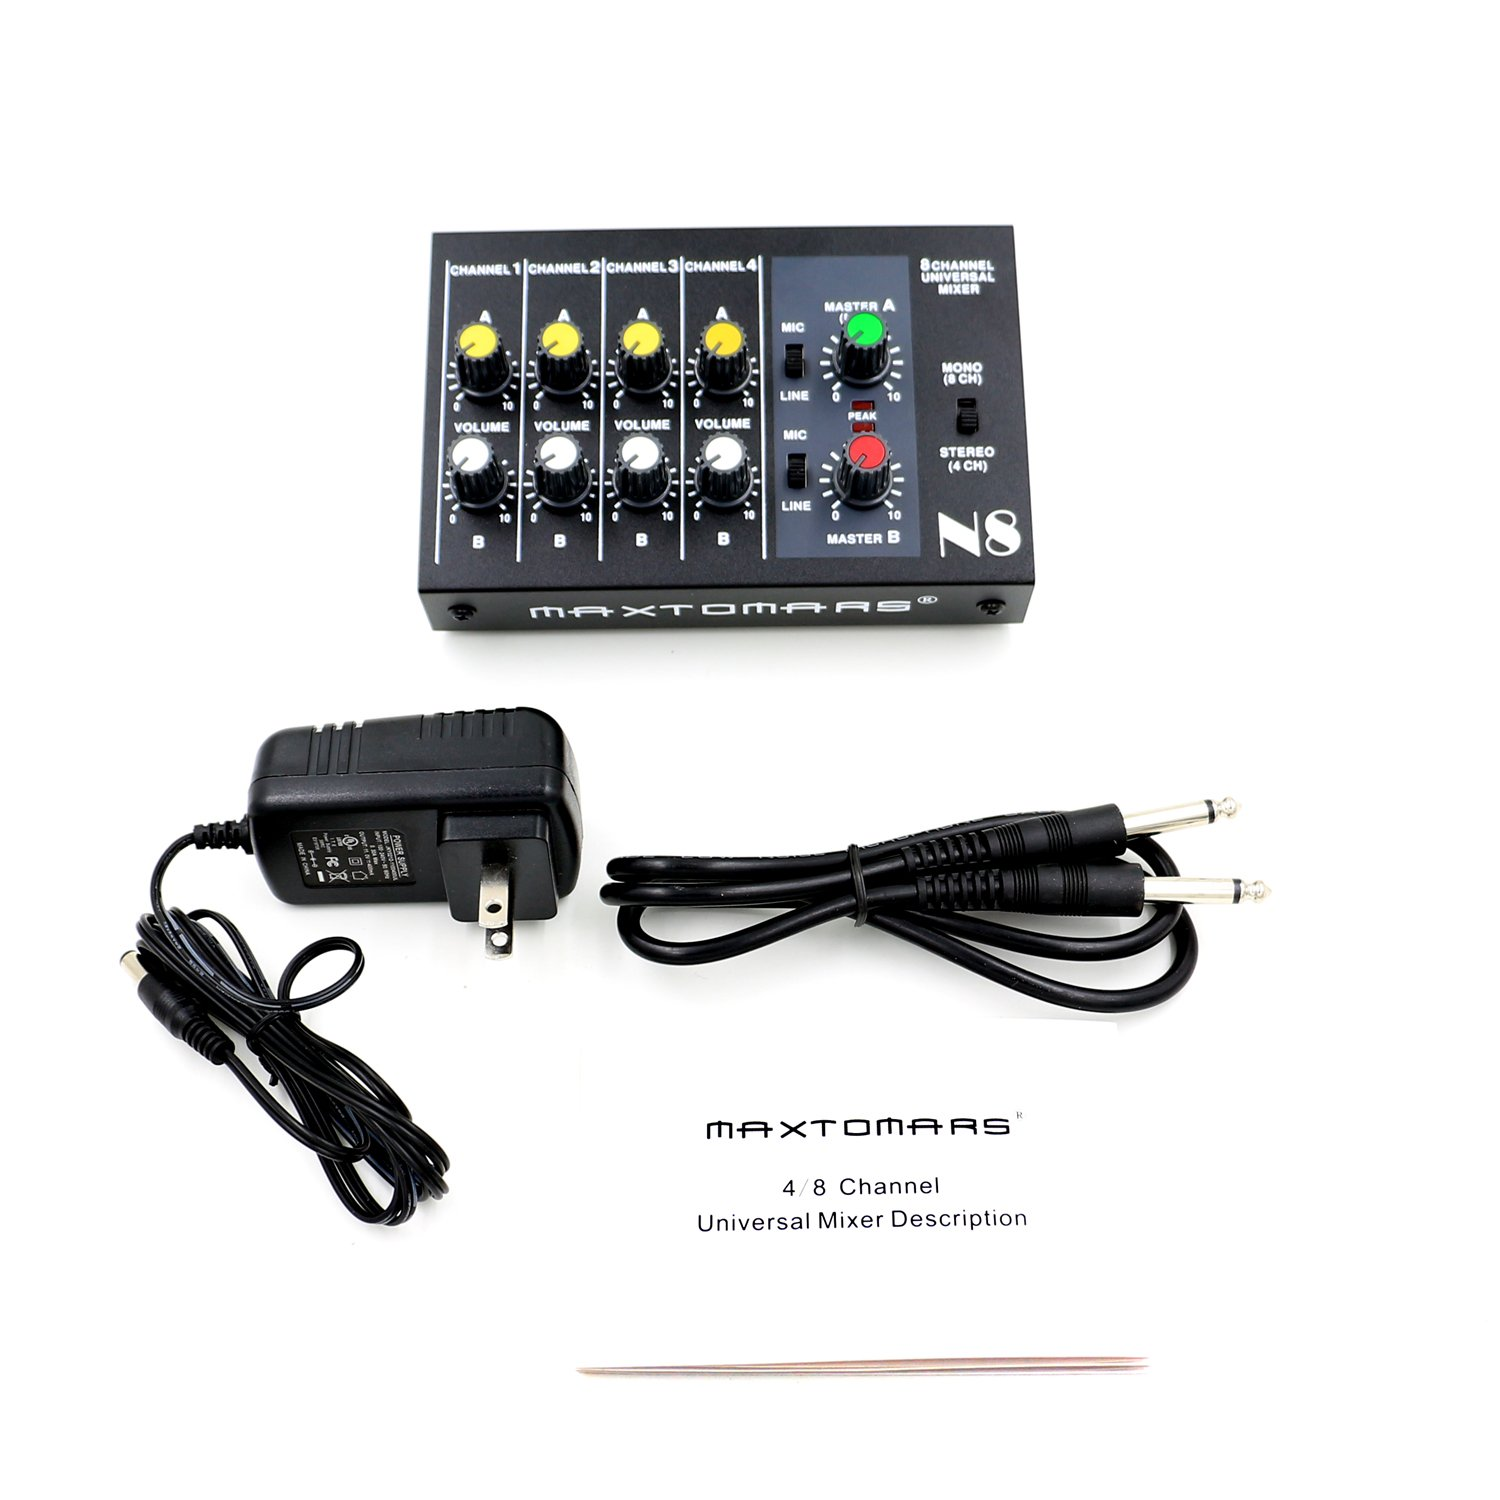 Amazon.com: MAXTOMARS® N8 4 Stereo / 8 Mono Channel, Mini Mixer 8 ...